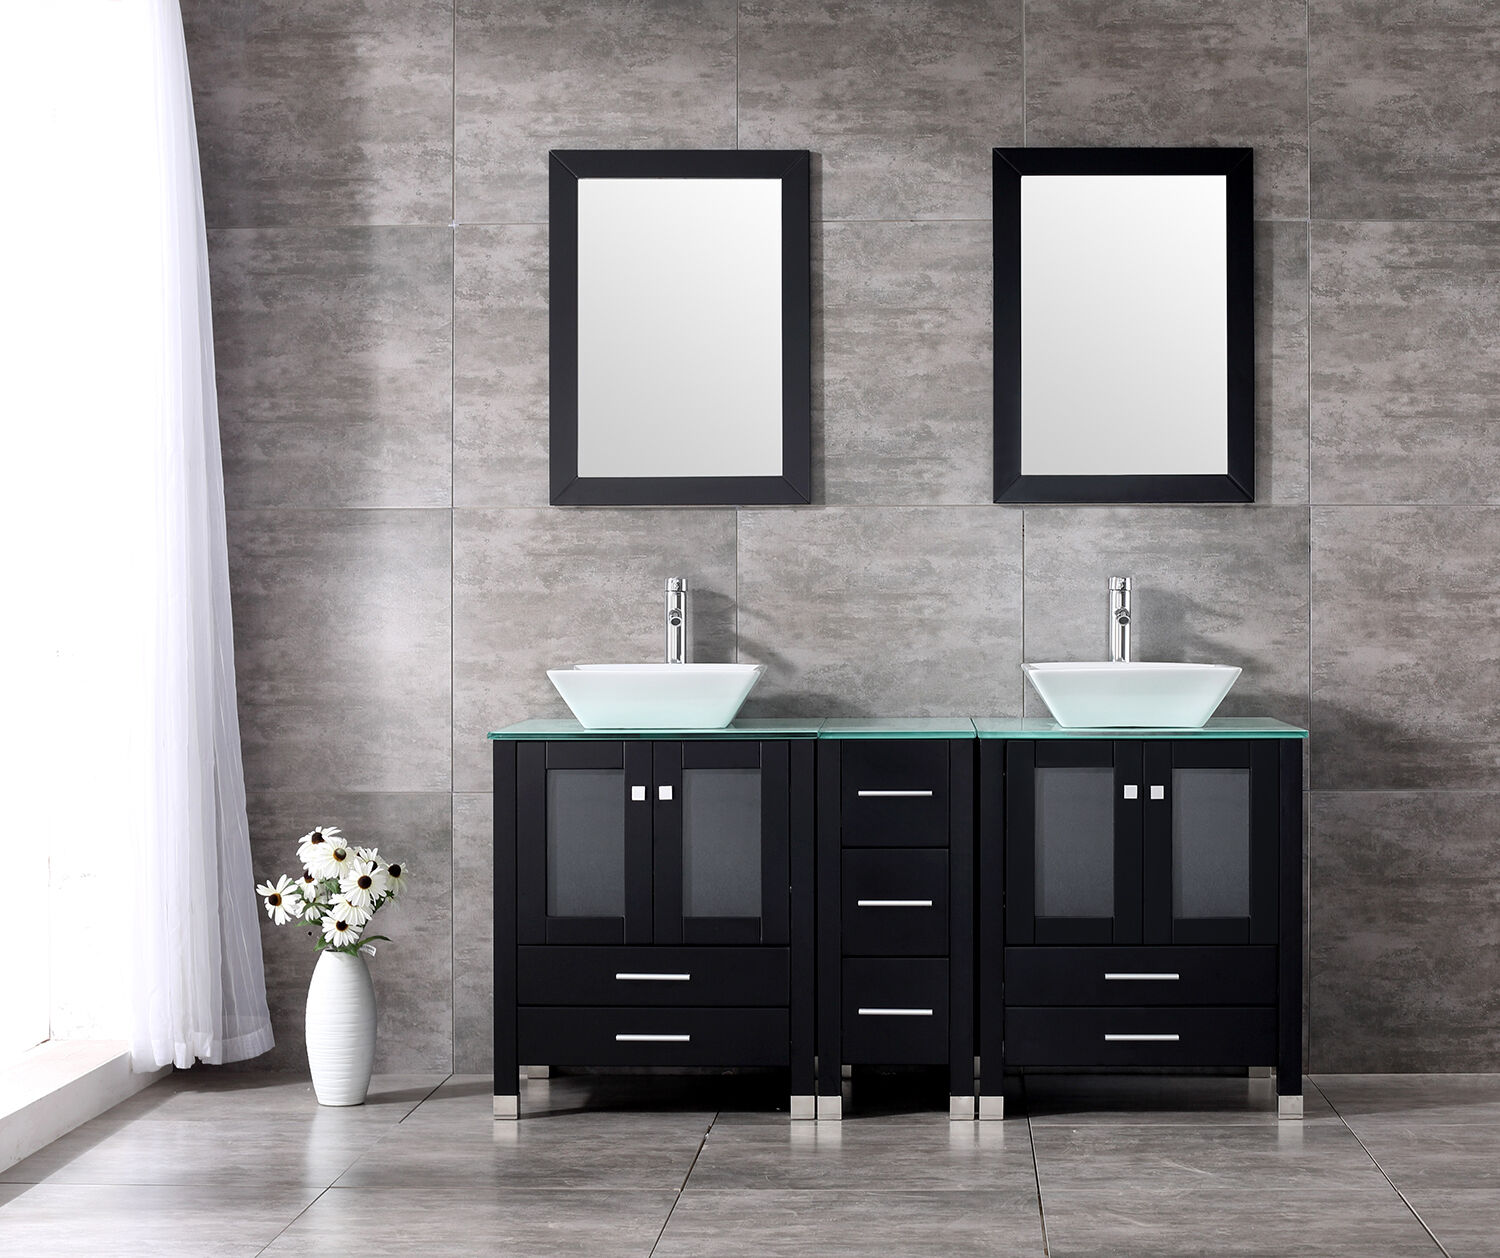 60 Double Vanity Bathroom Ceramic Sink Cabinet Combo Set W Mirrors Faucet For Sale Online